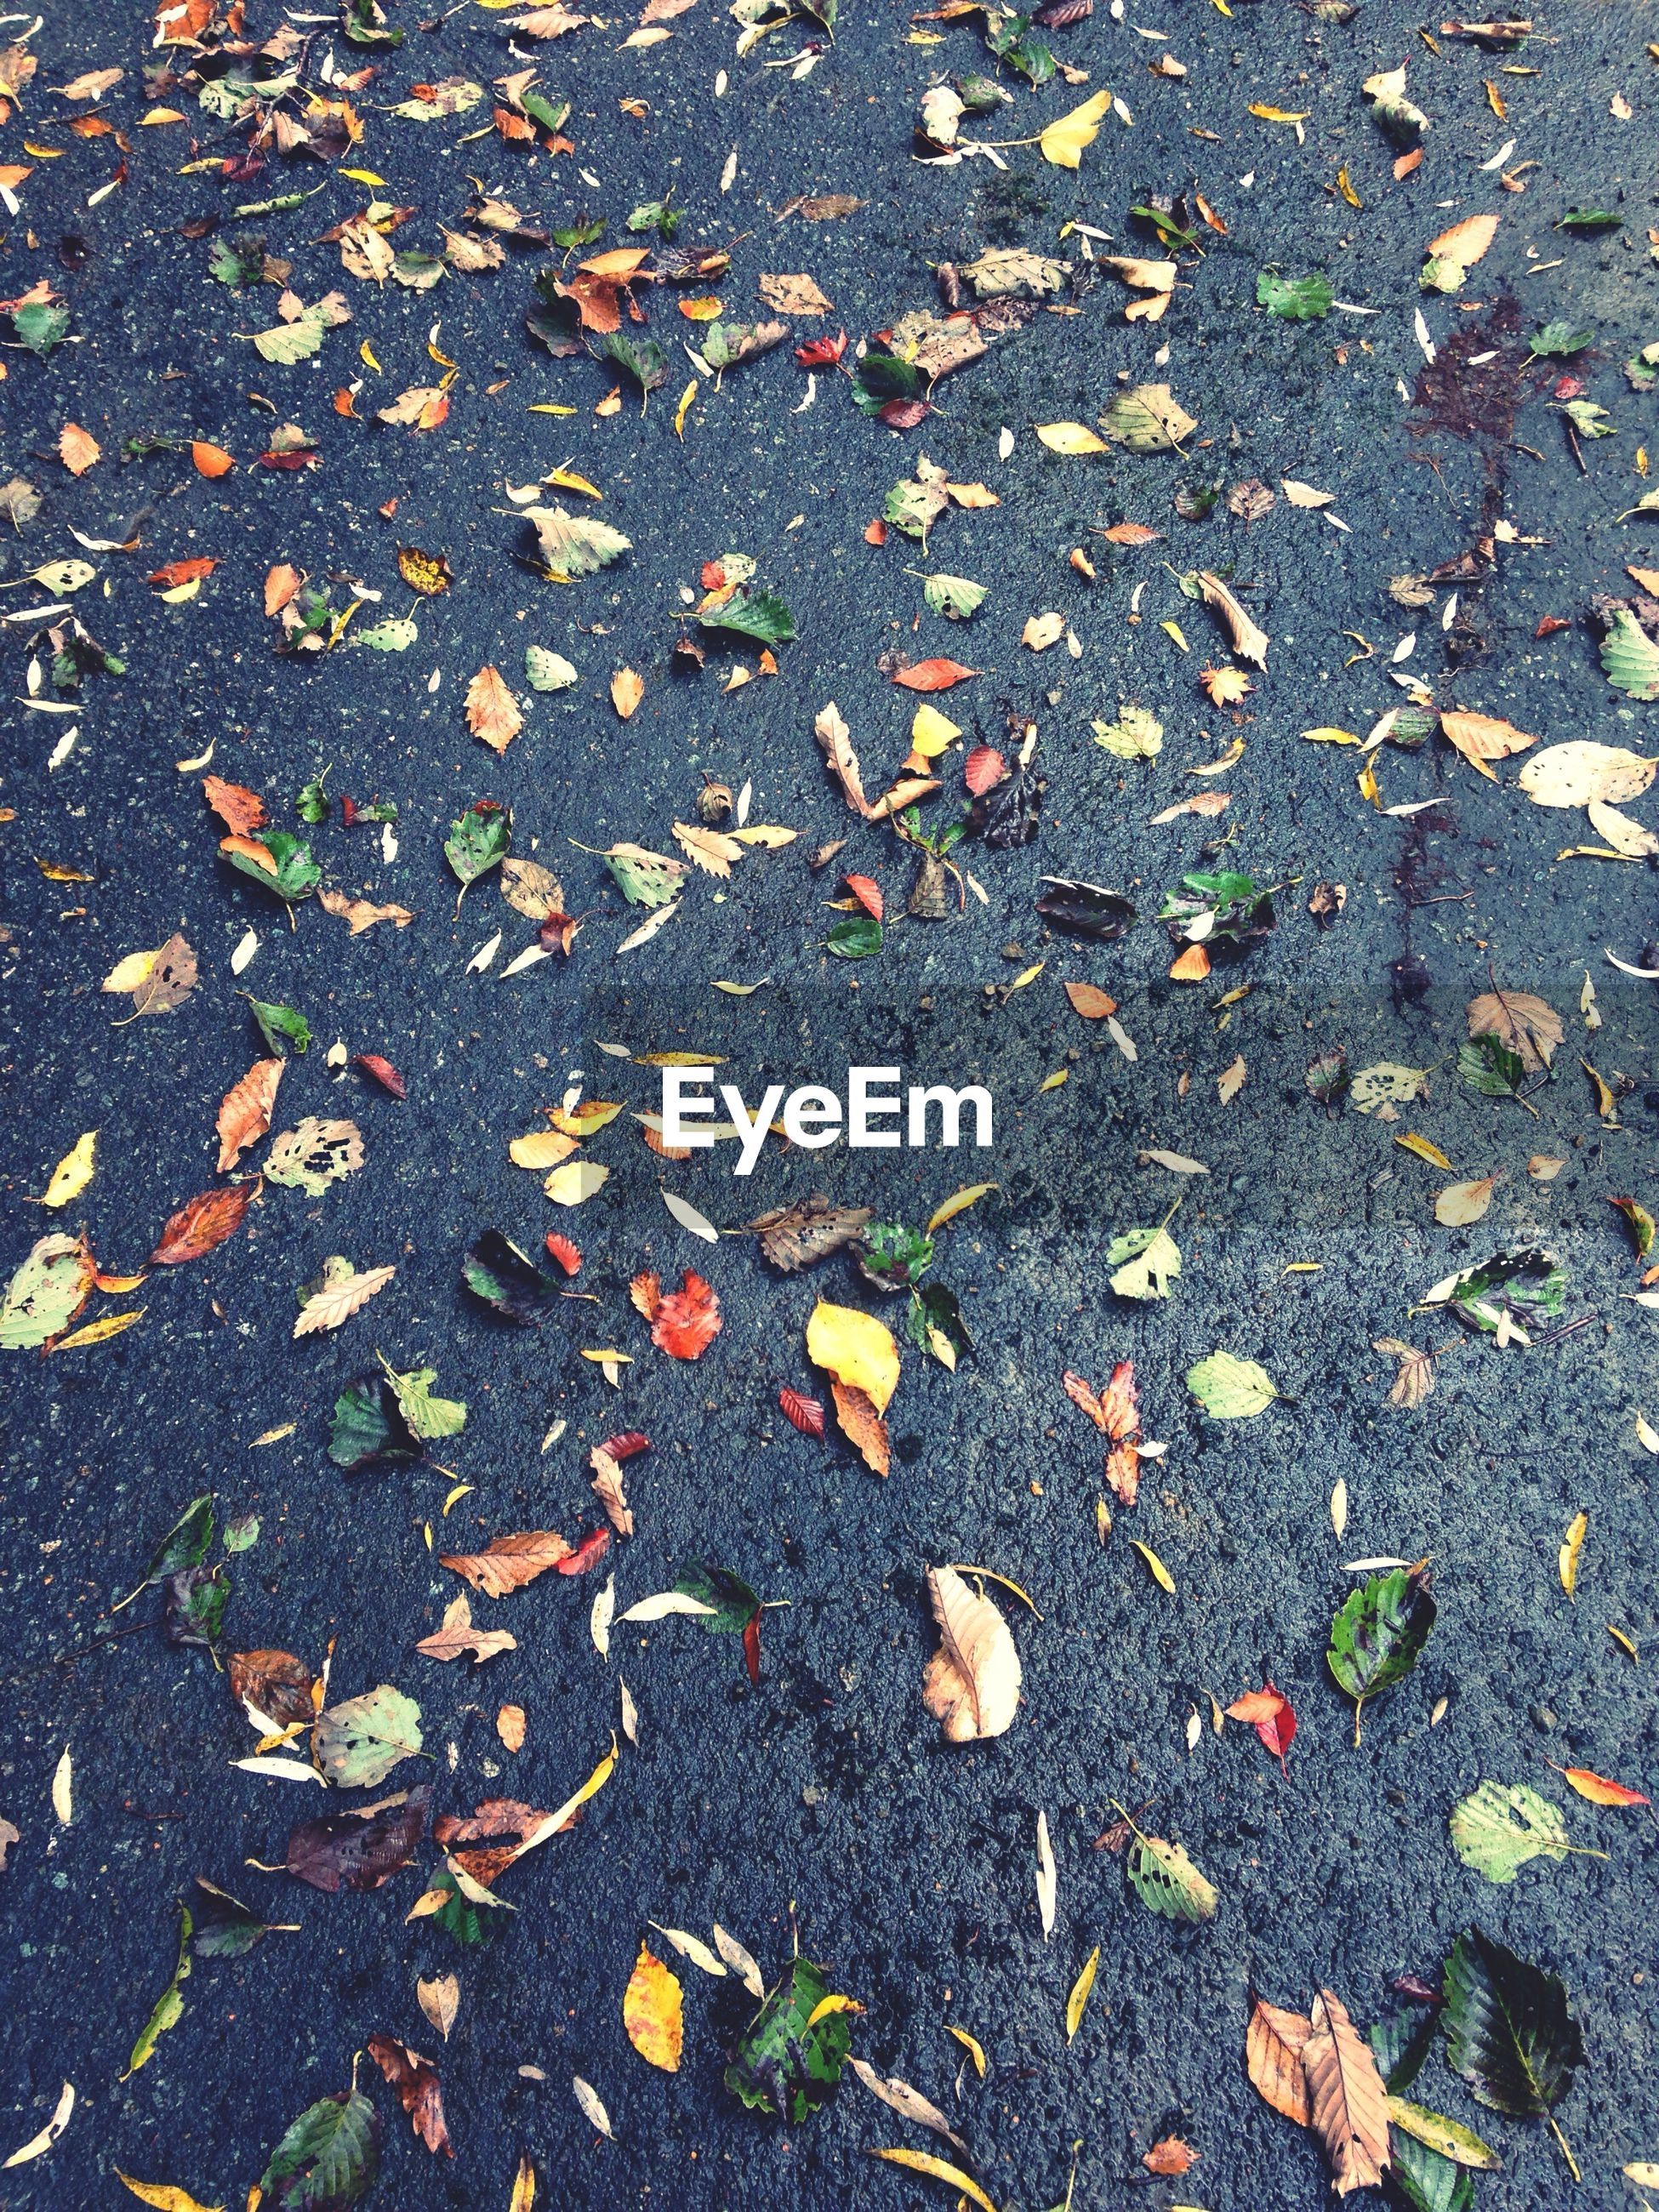 autumn, leaf, change, high angle view, fallen, dry, season, leaves, nature, asphalt, grass, street, falling, field, ground, yellow, day, outdoors, maple leaf, no people